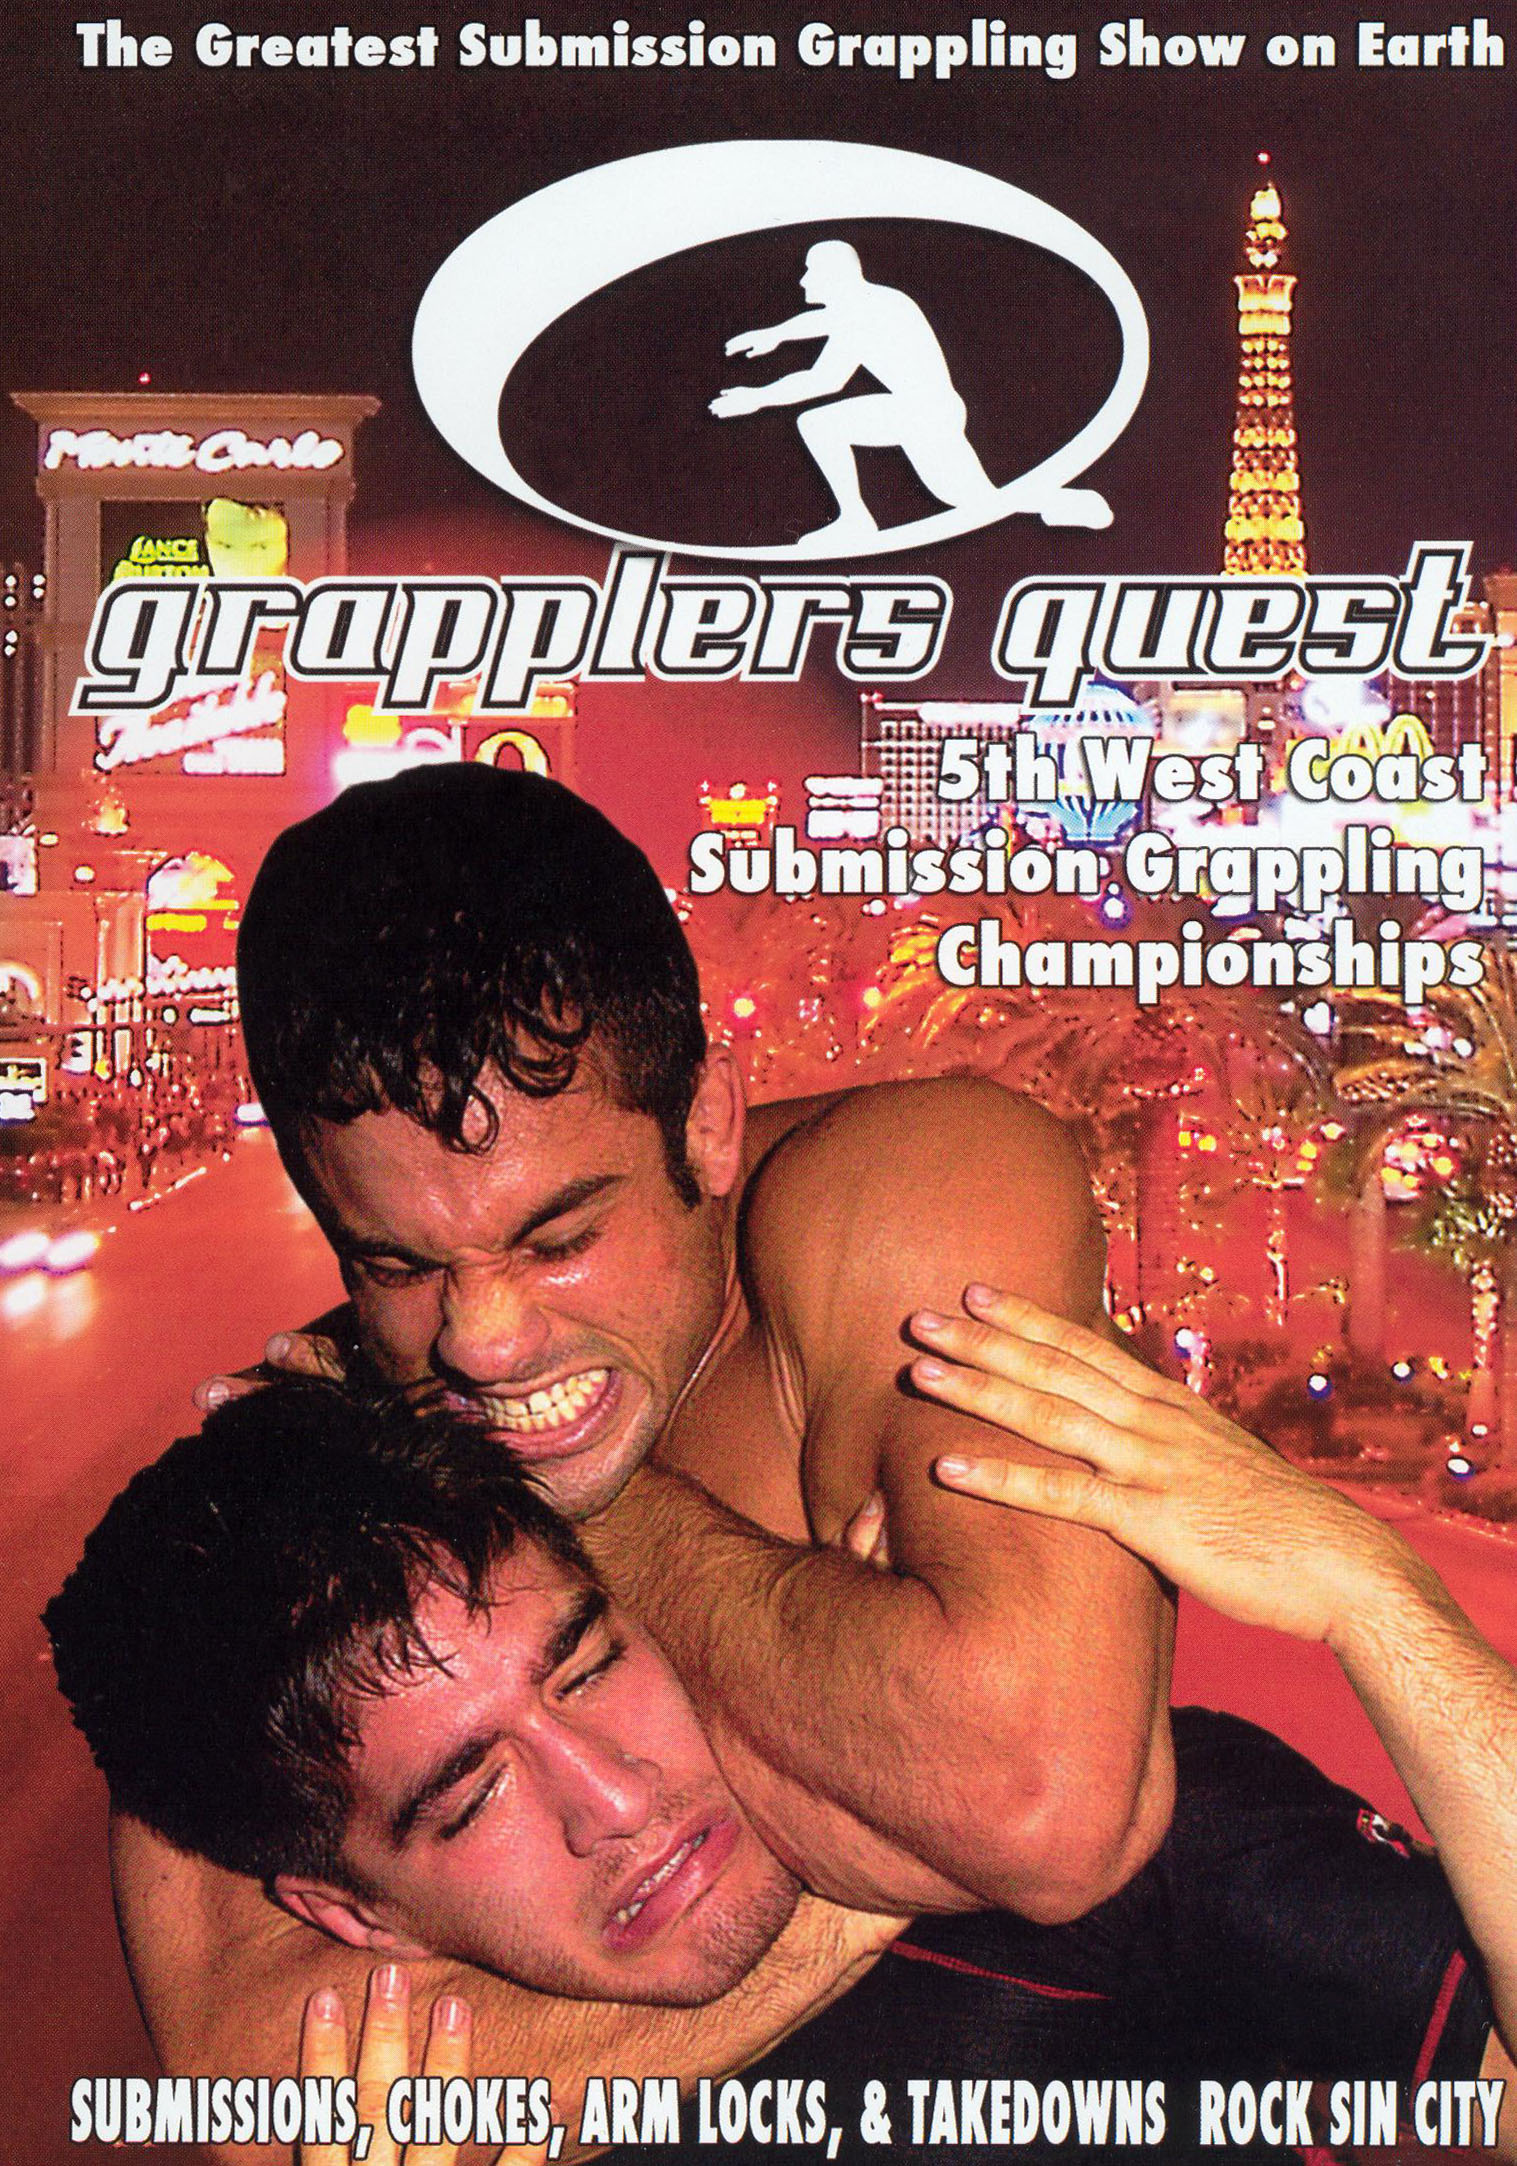 Grapplers Quest: 5th West Coast Submission Grappling 2004